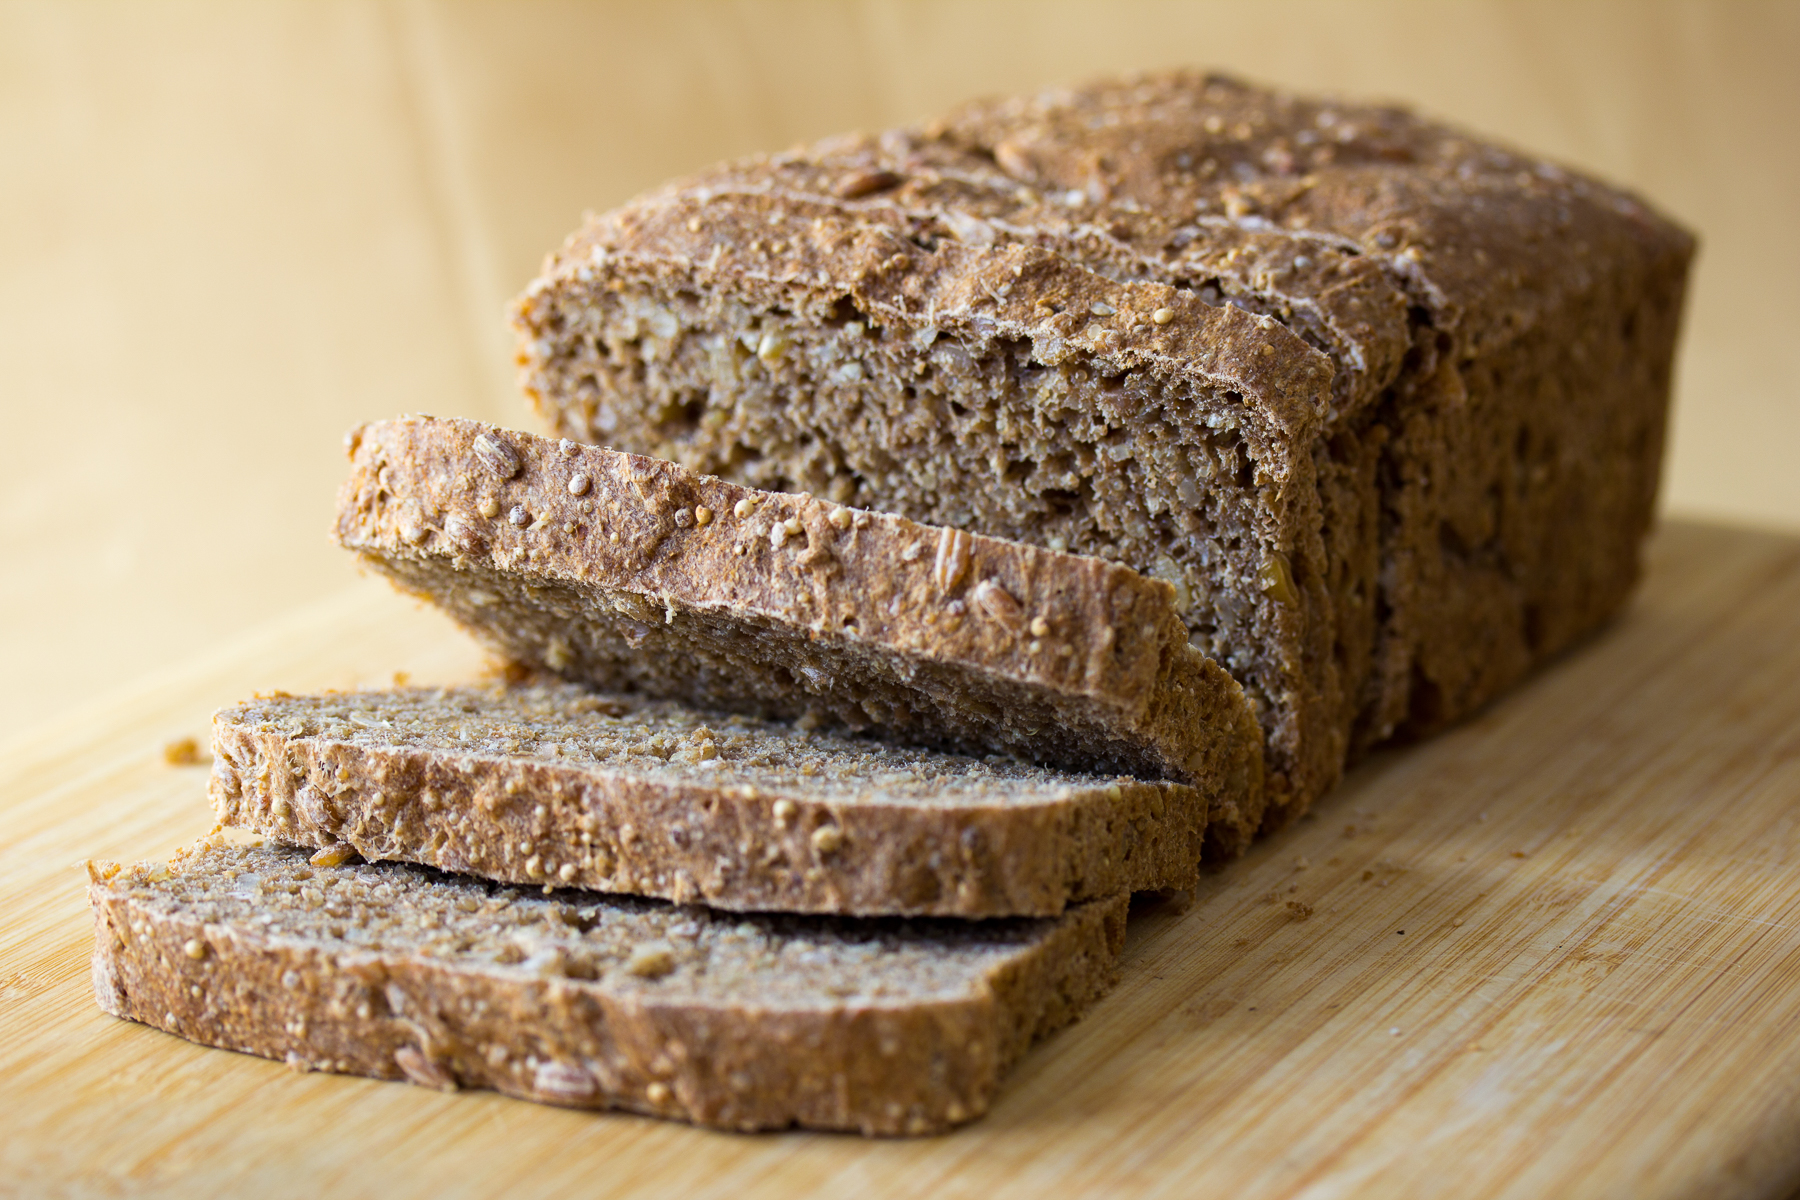 A loaf of whole-wheat bread, which could look brown or white in color, depending on how the wheat flour is processed. (Photo: Mattie Hagedorn)